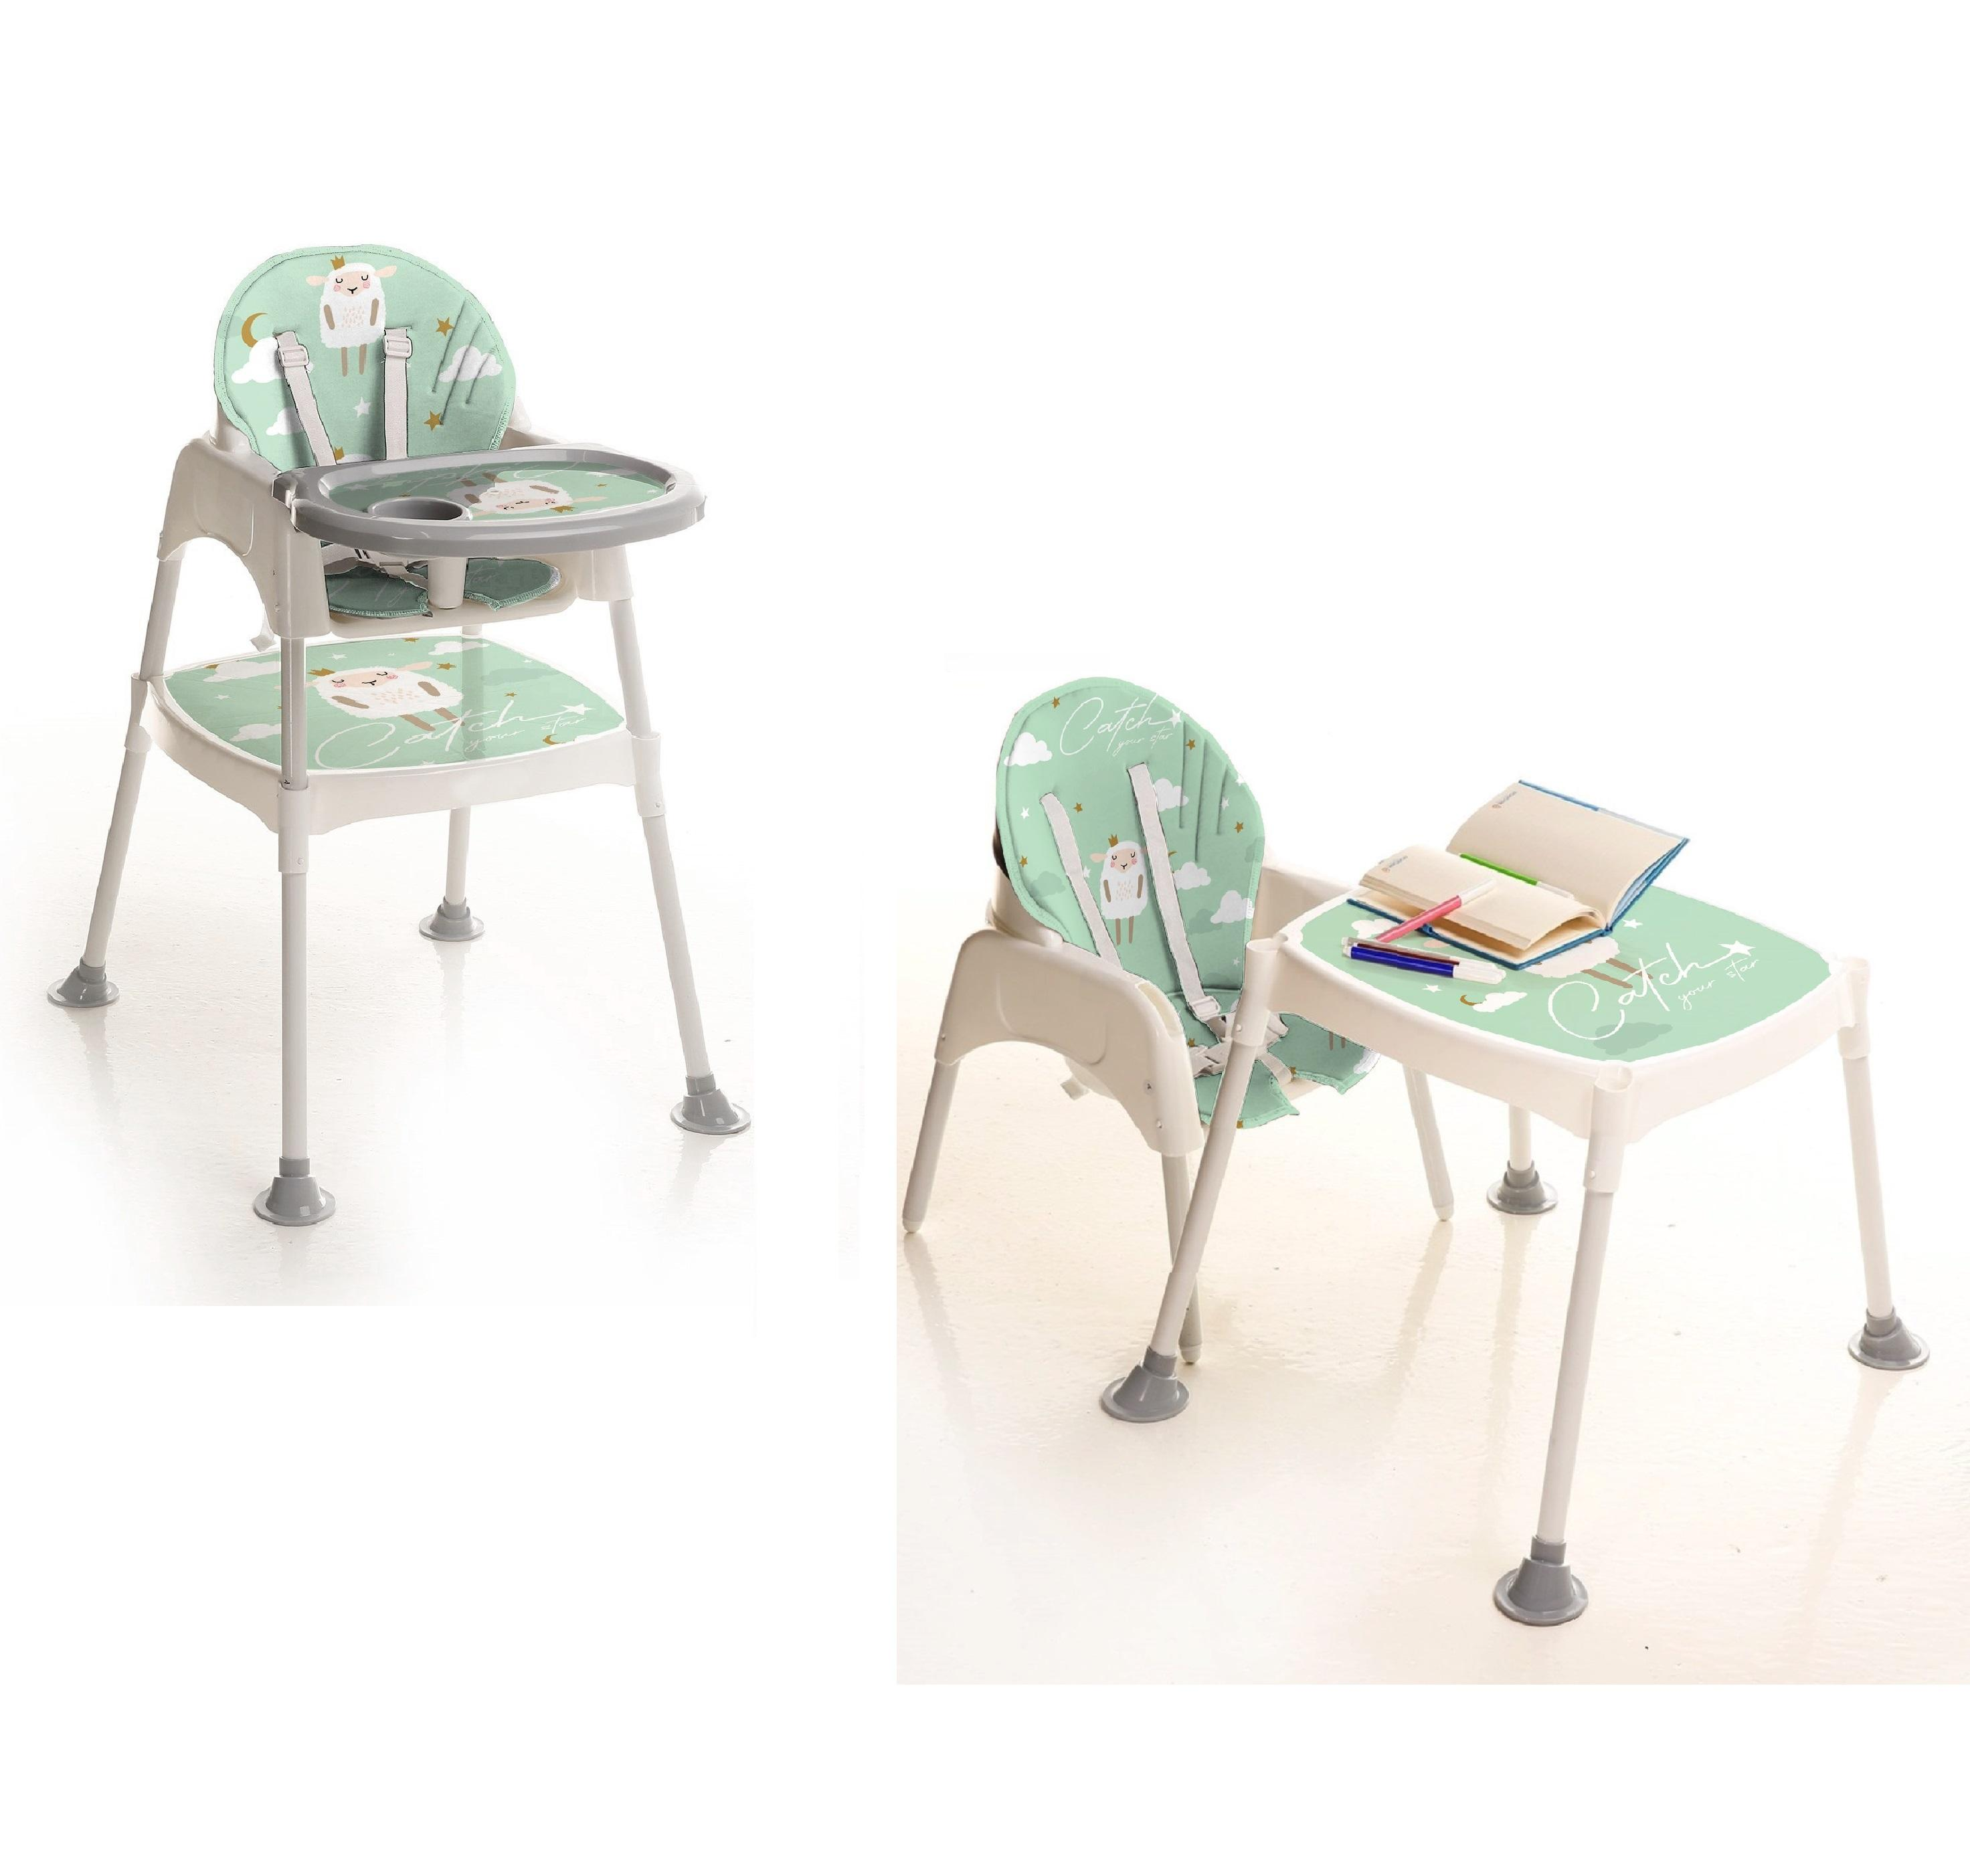 Best price hot sale baby high chair baby feeding high chair baby table and chair made in Turkey